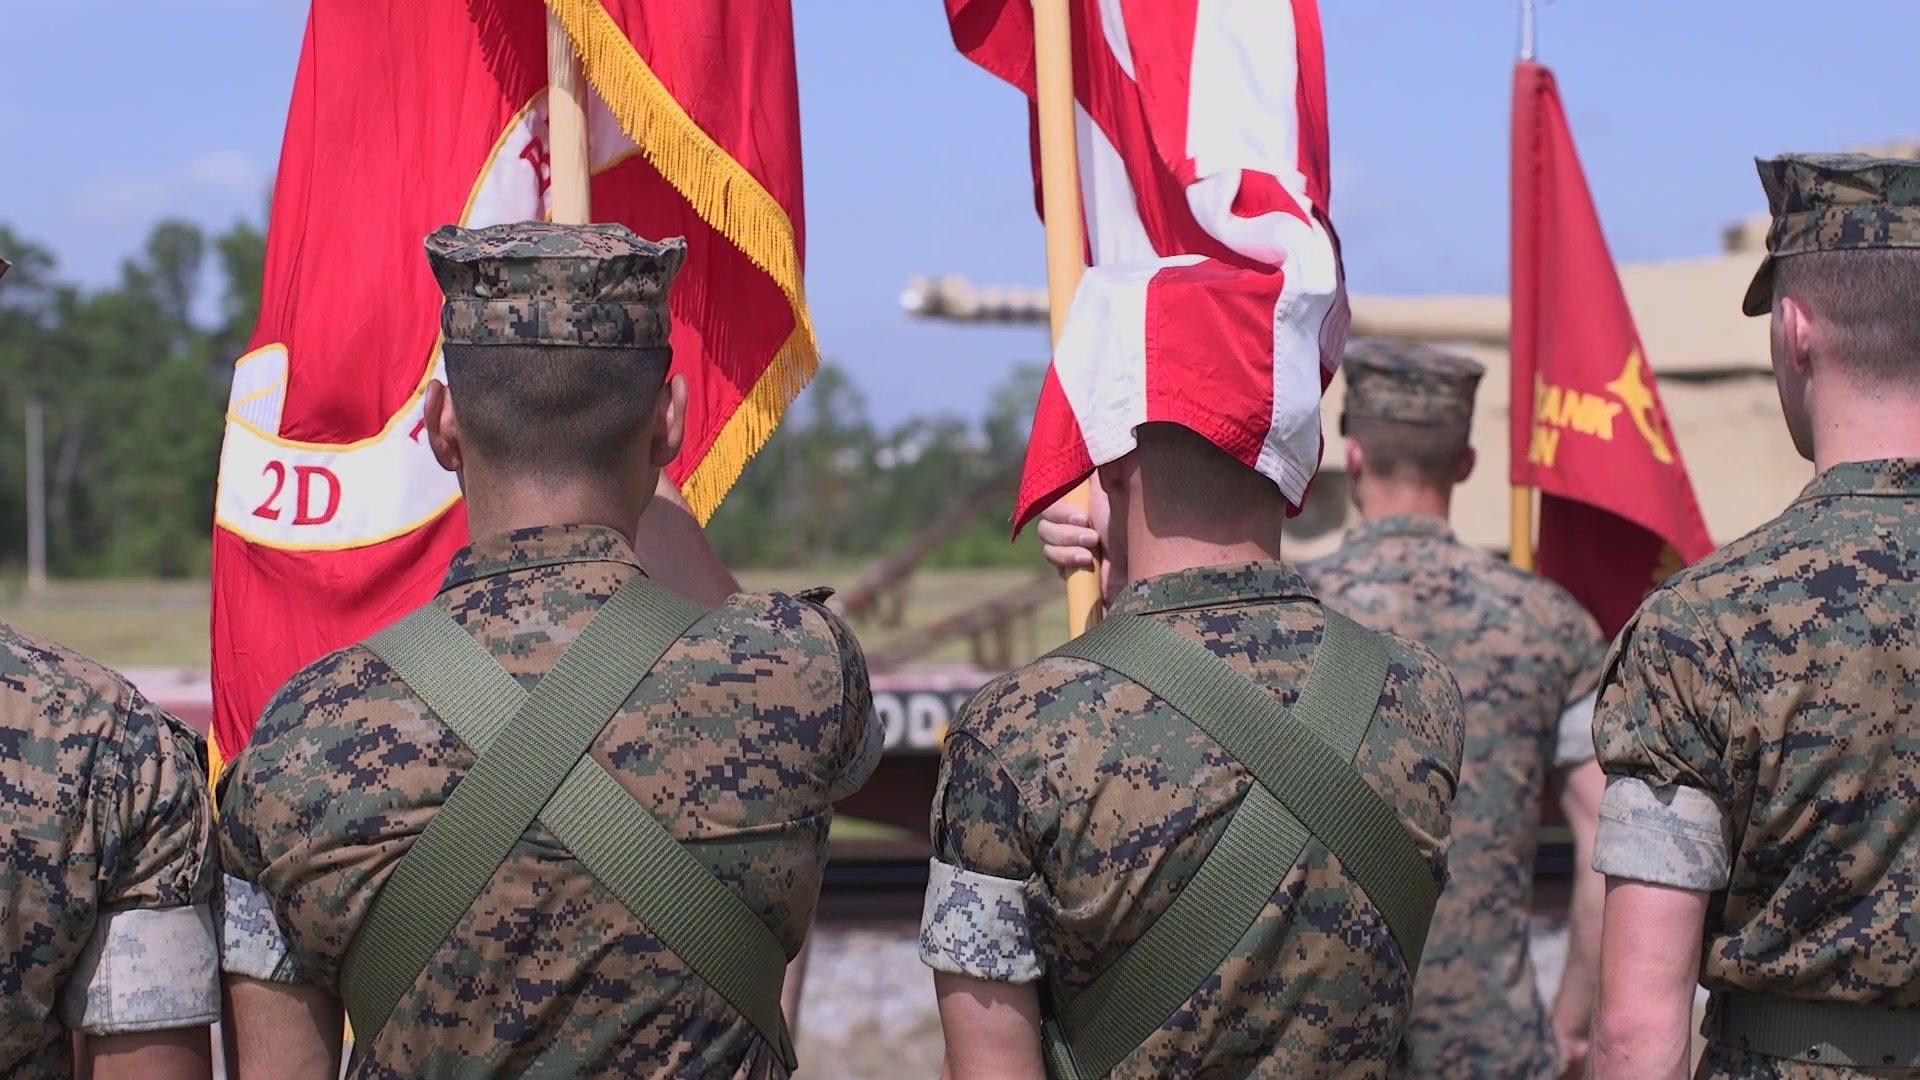 U.S. Marines with 2d Tank Battalion, 2d Marine Division, host a ceremony to sendoff the last Tanks in Camp Lejeune, North Carolina, July 31, 2020. After 78 years of service, 2d Tank Battalion will be deactivated in accordance to the future redesign of the Marine Corps.